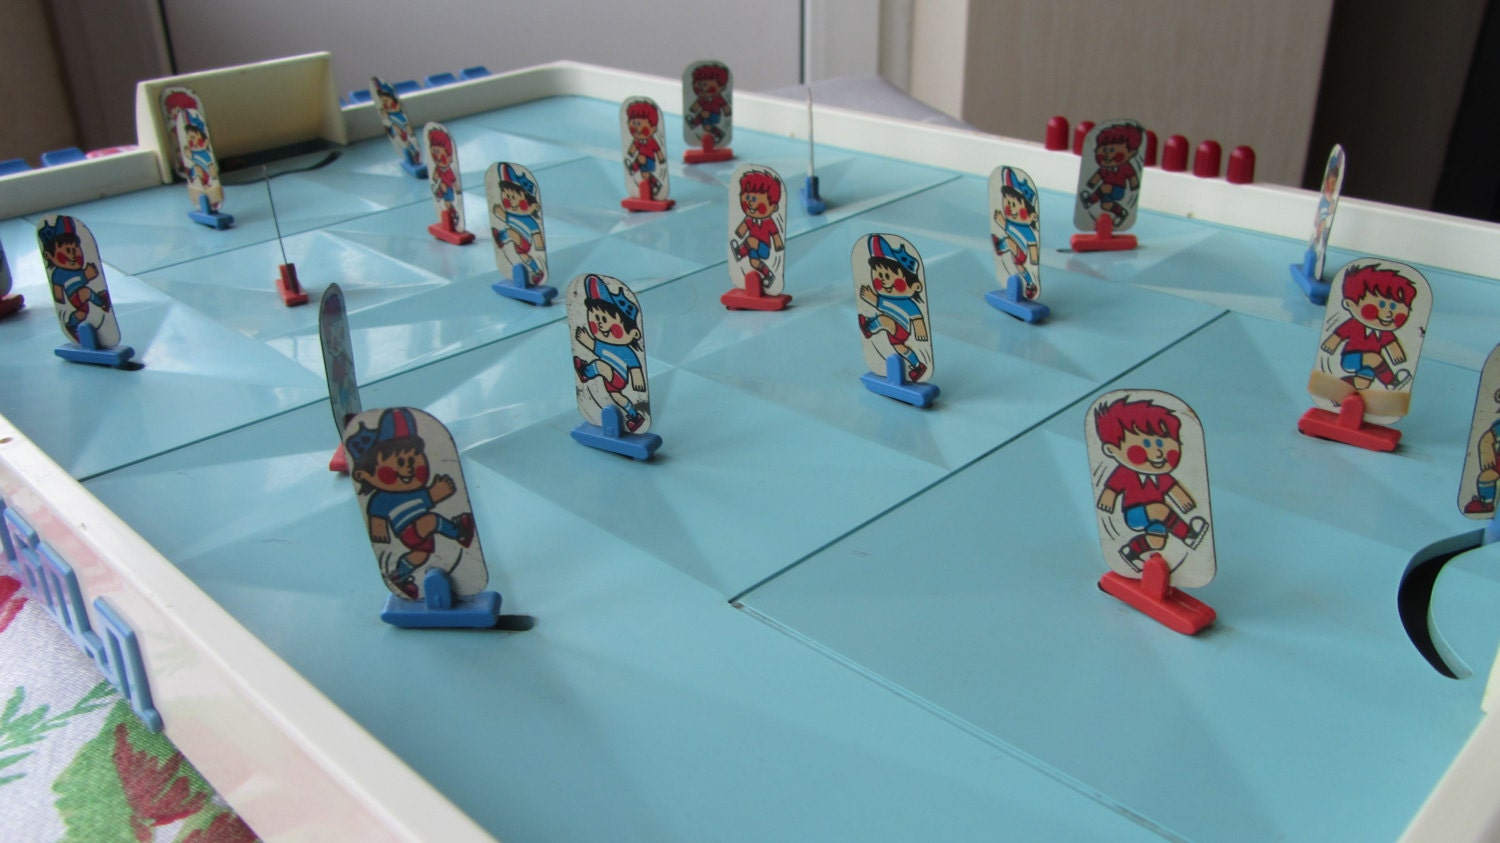 Big Table Soccer Board Game from Soviet Union Era, Game room gift, Football fan